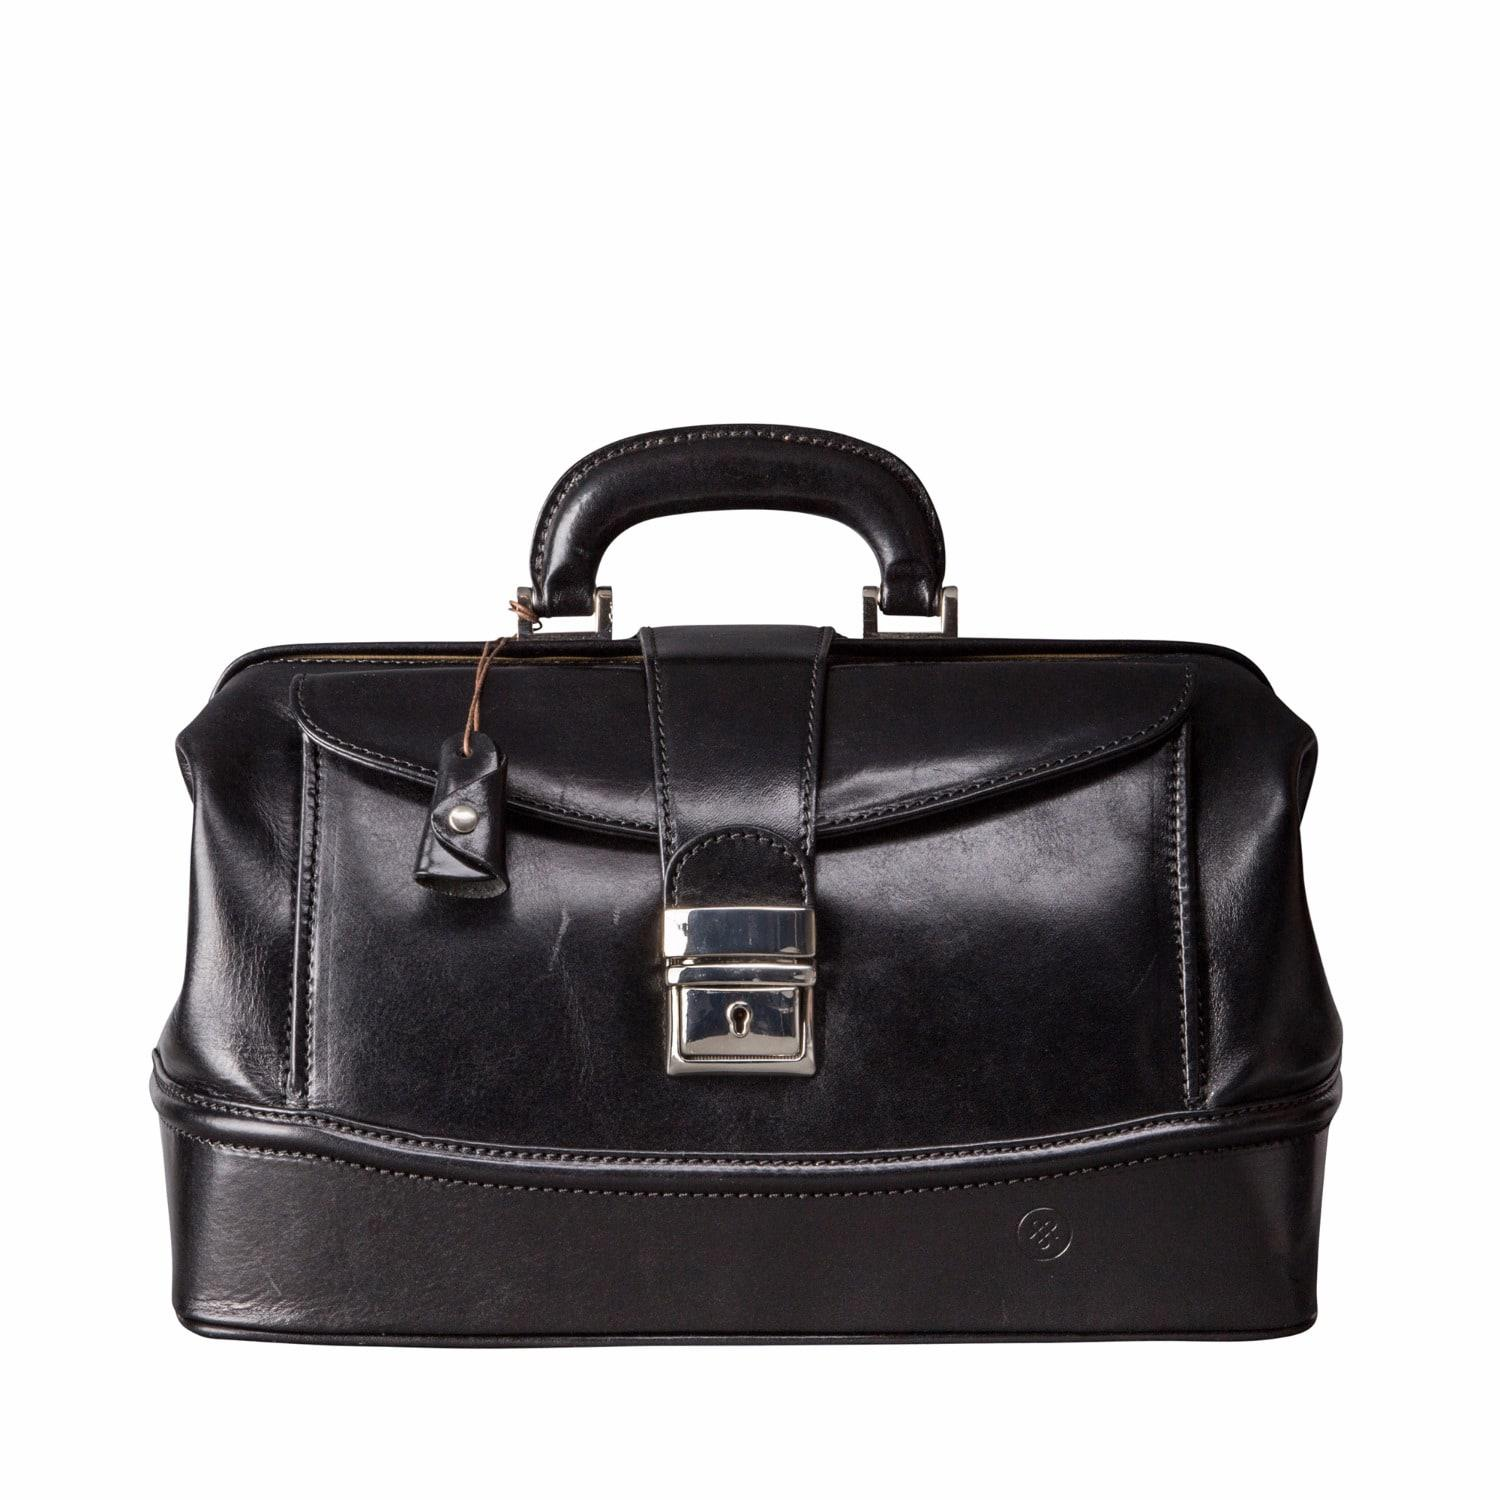 lyst maxwell scott bags the donnini s small luxury leather doctors bag black in black for men. Black Bedroom Furniture Sets. Home Design Ideas